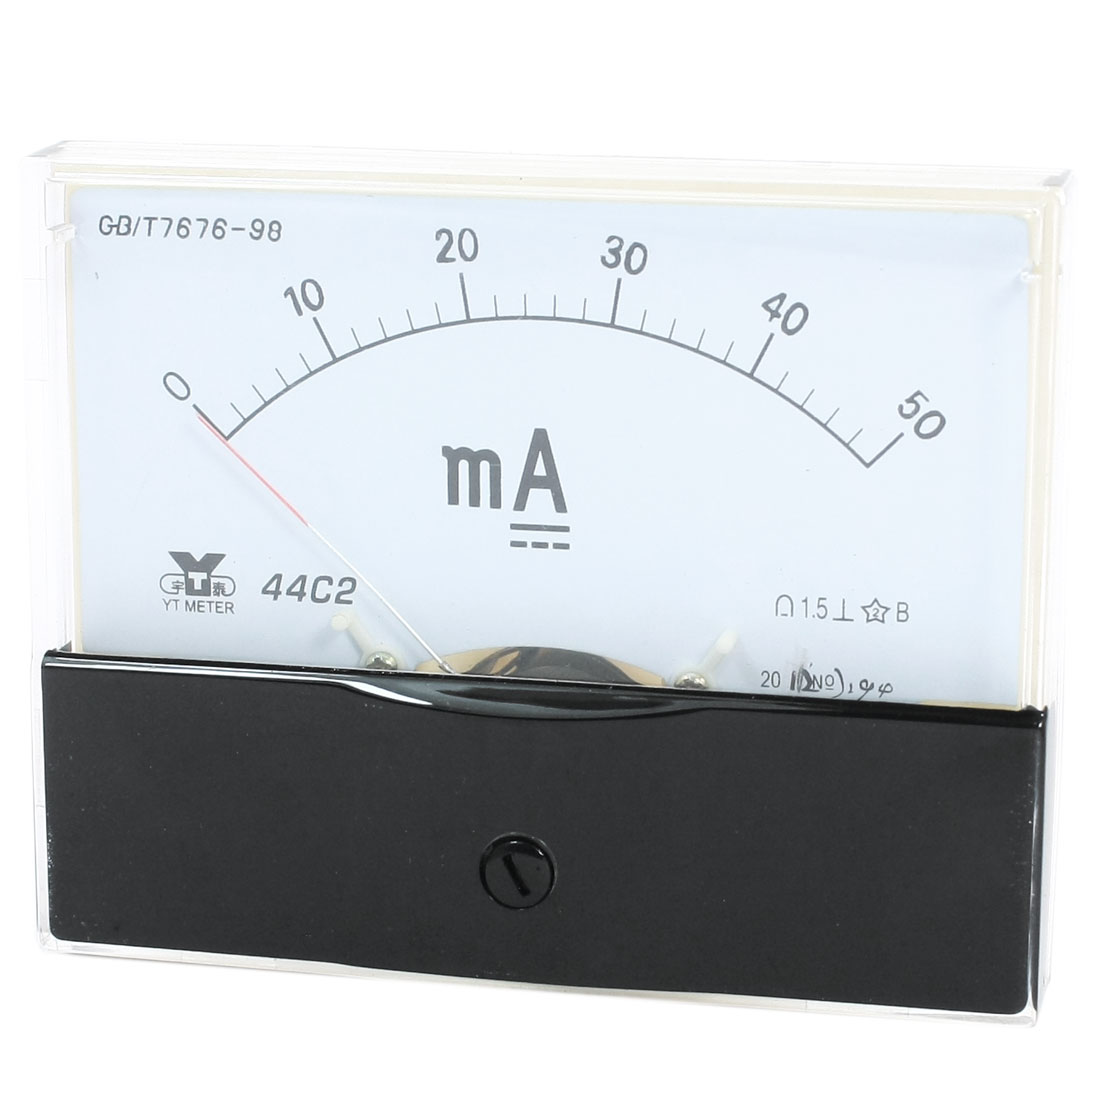 Measurement Tool Analog Panel Ammeter Gauge Tester DC 0 - 50mA Measuring Range 44C2